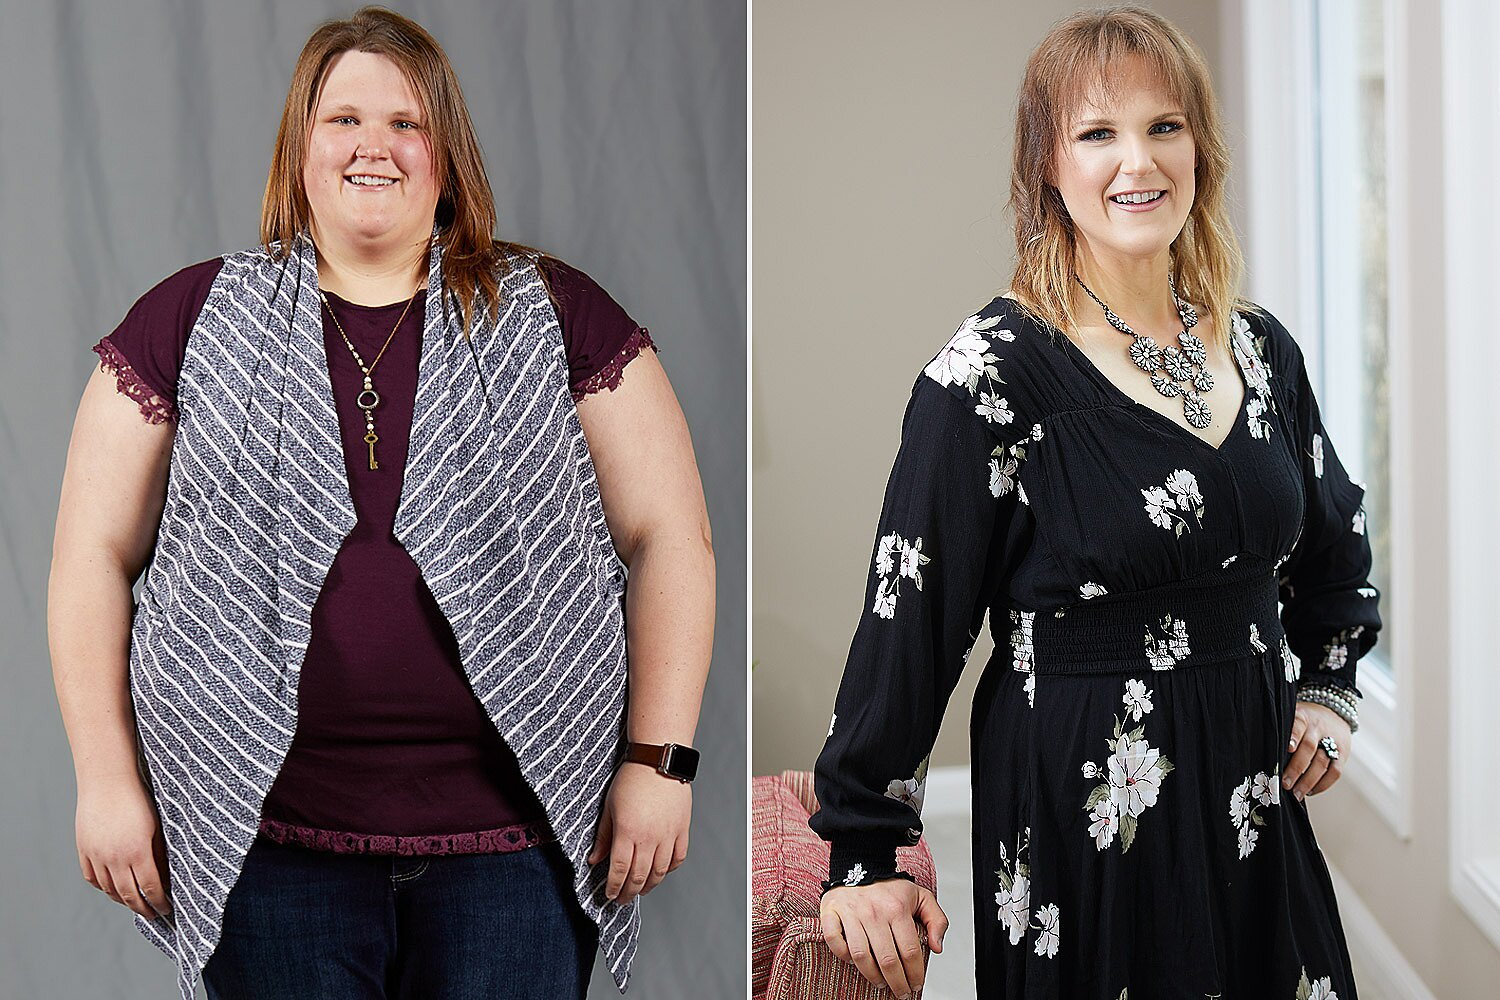 weight loss in 3 months success stories